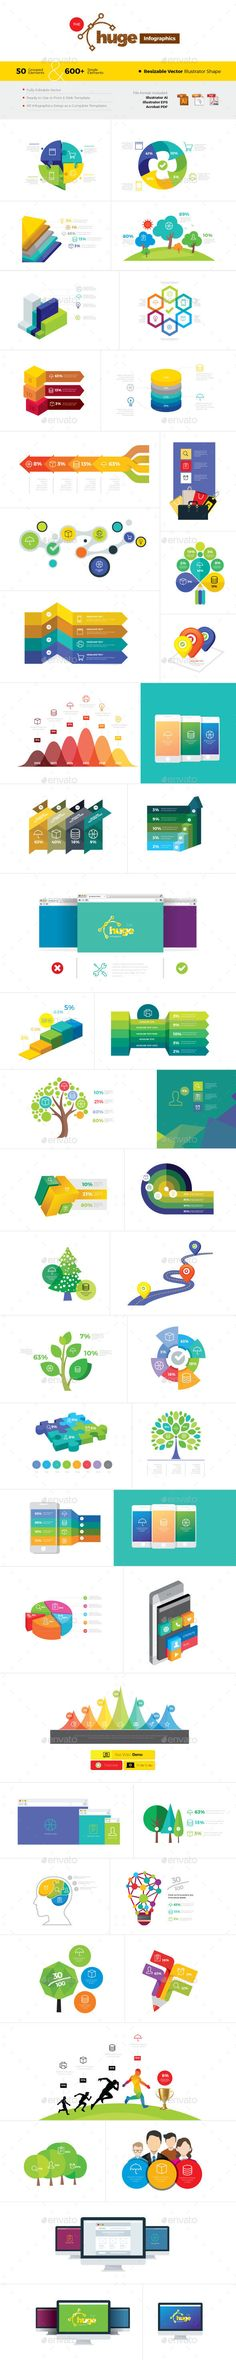 Huge - Clean & Brand Infographics Template Vector EPS, AI. Download here: http://graphicriver.net/item/huge-clean-brand-infographics/14456889?ref=ksioks